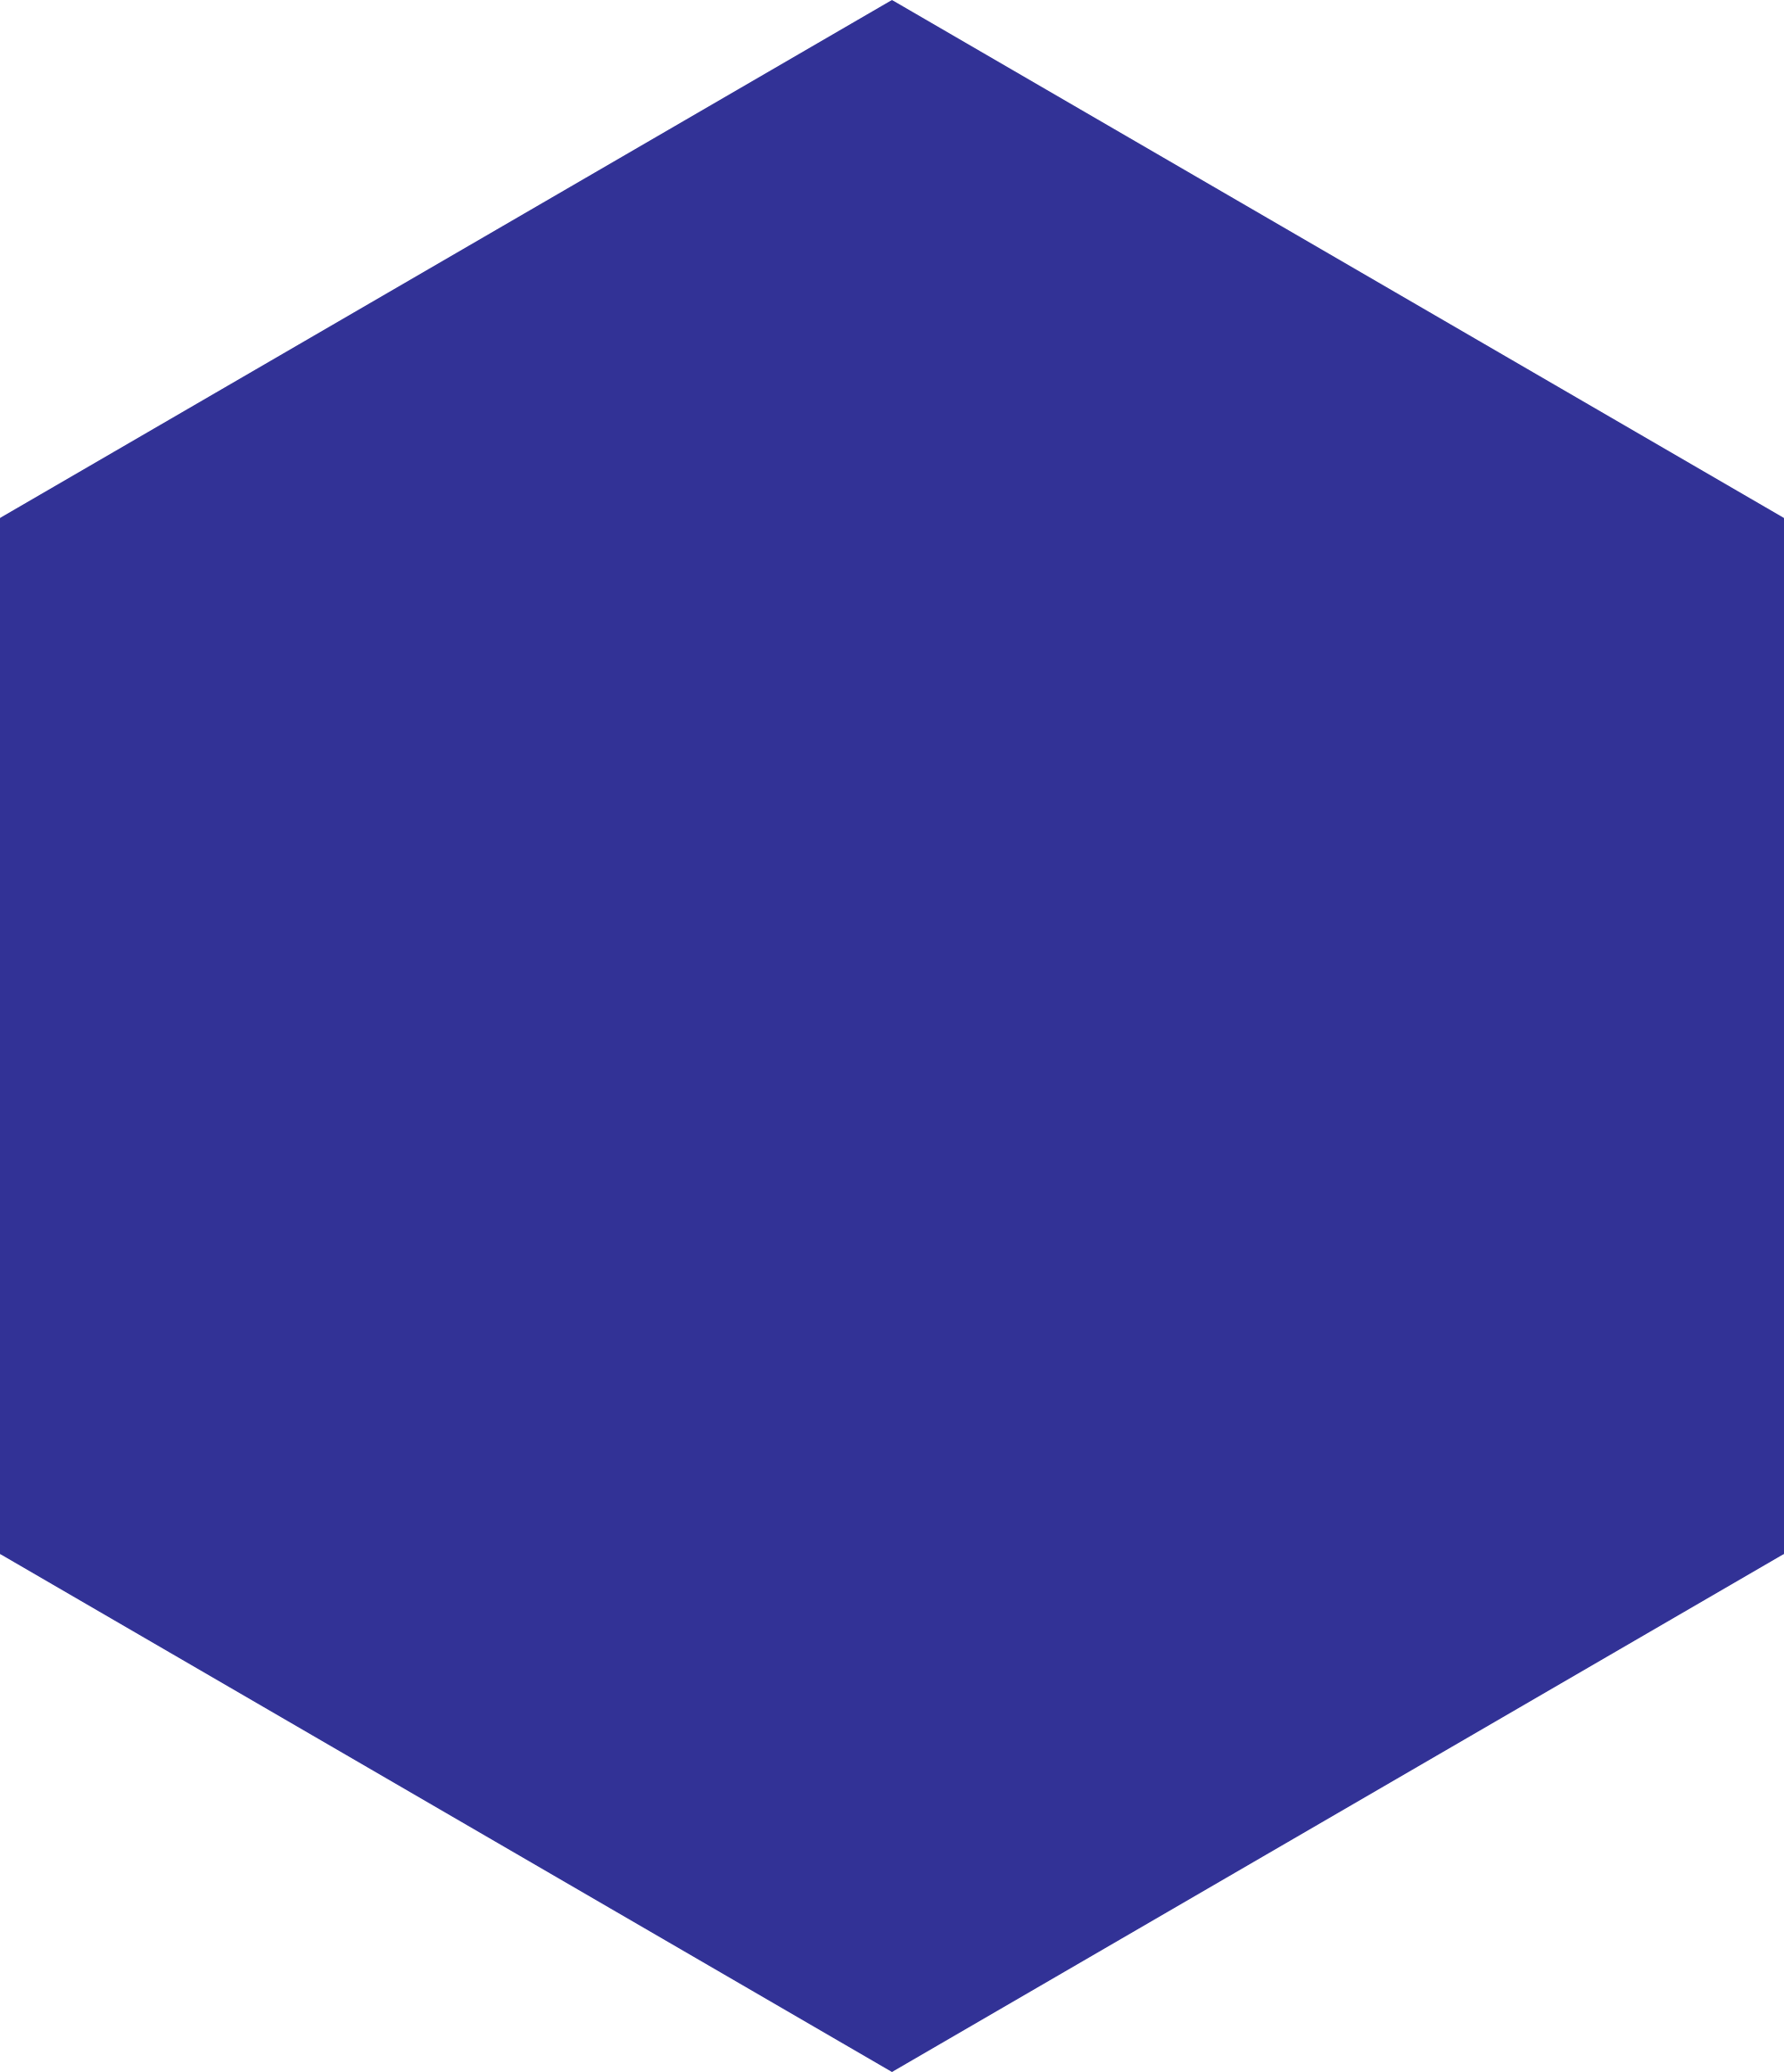 PNG Hexagon Shape - 53355